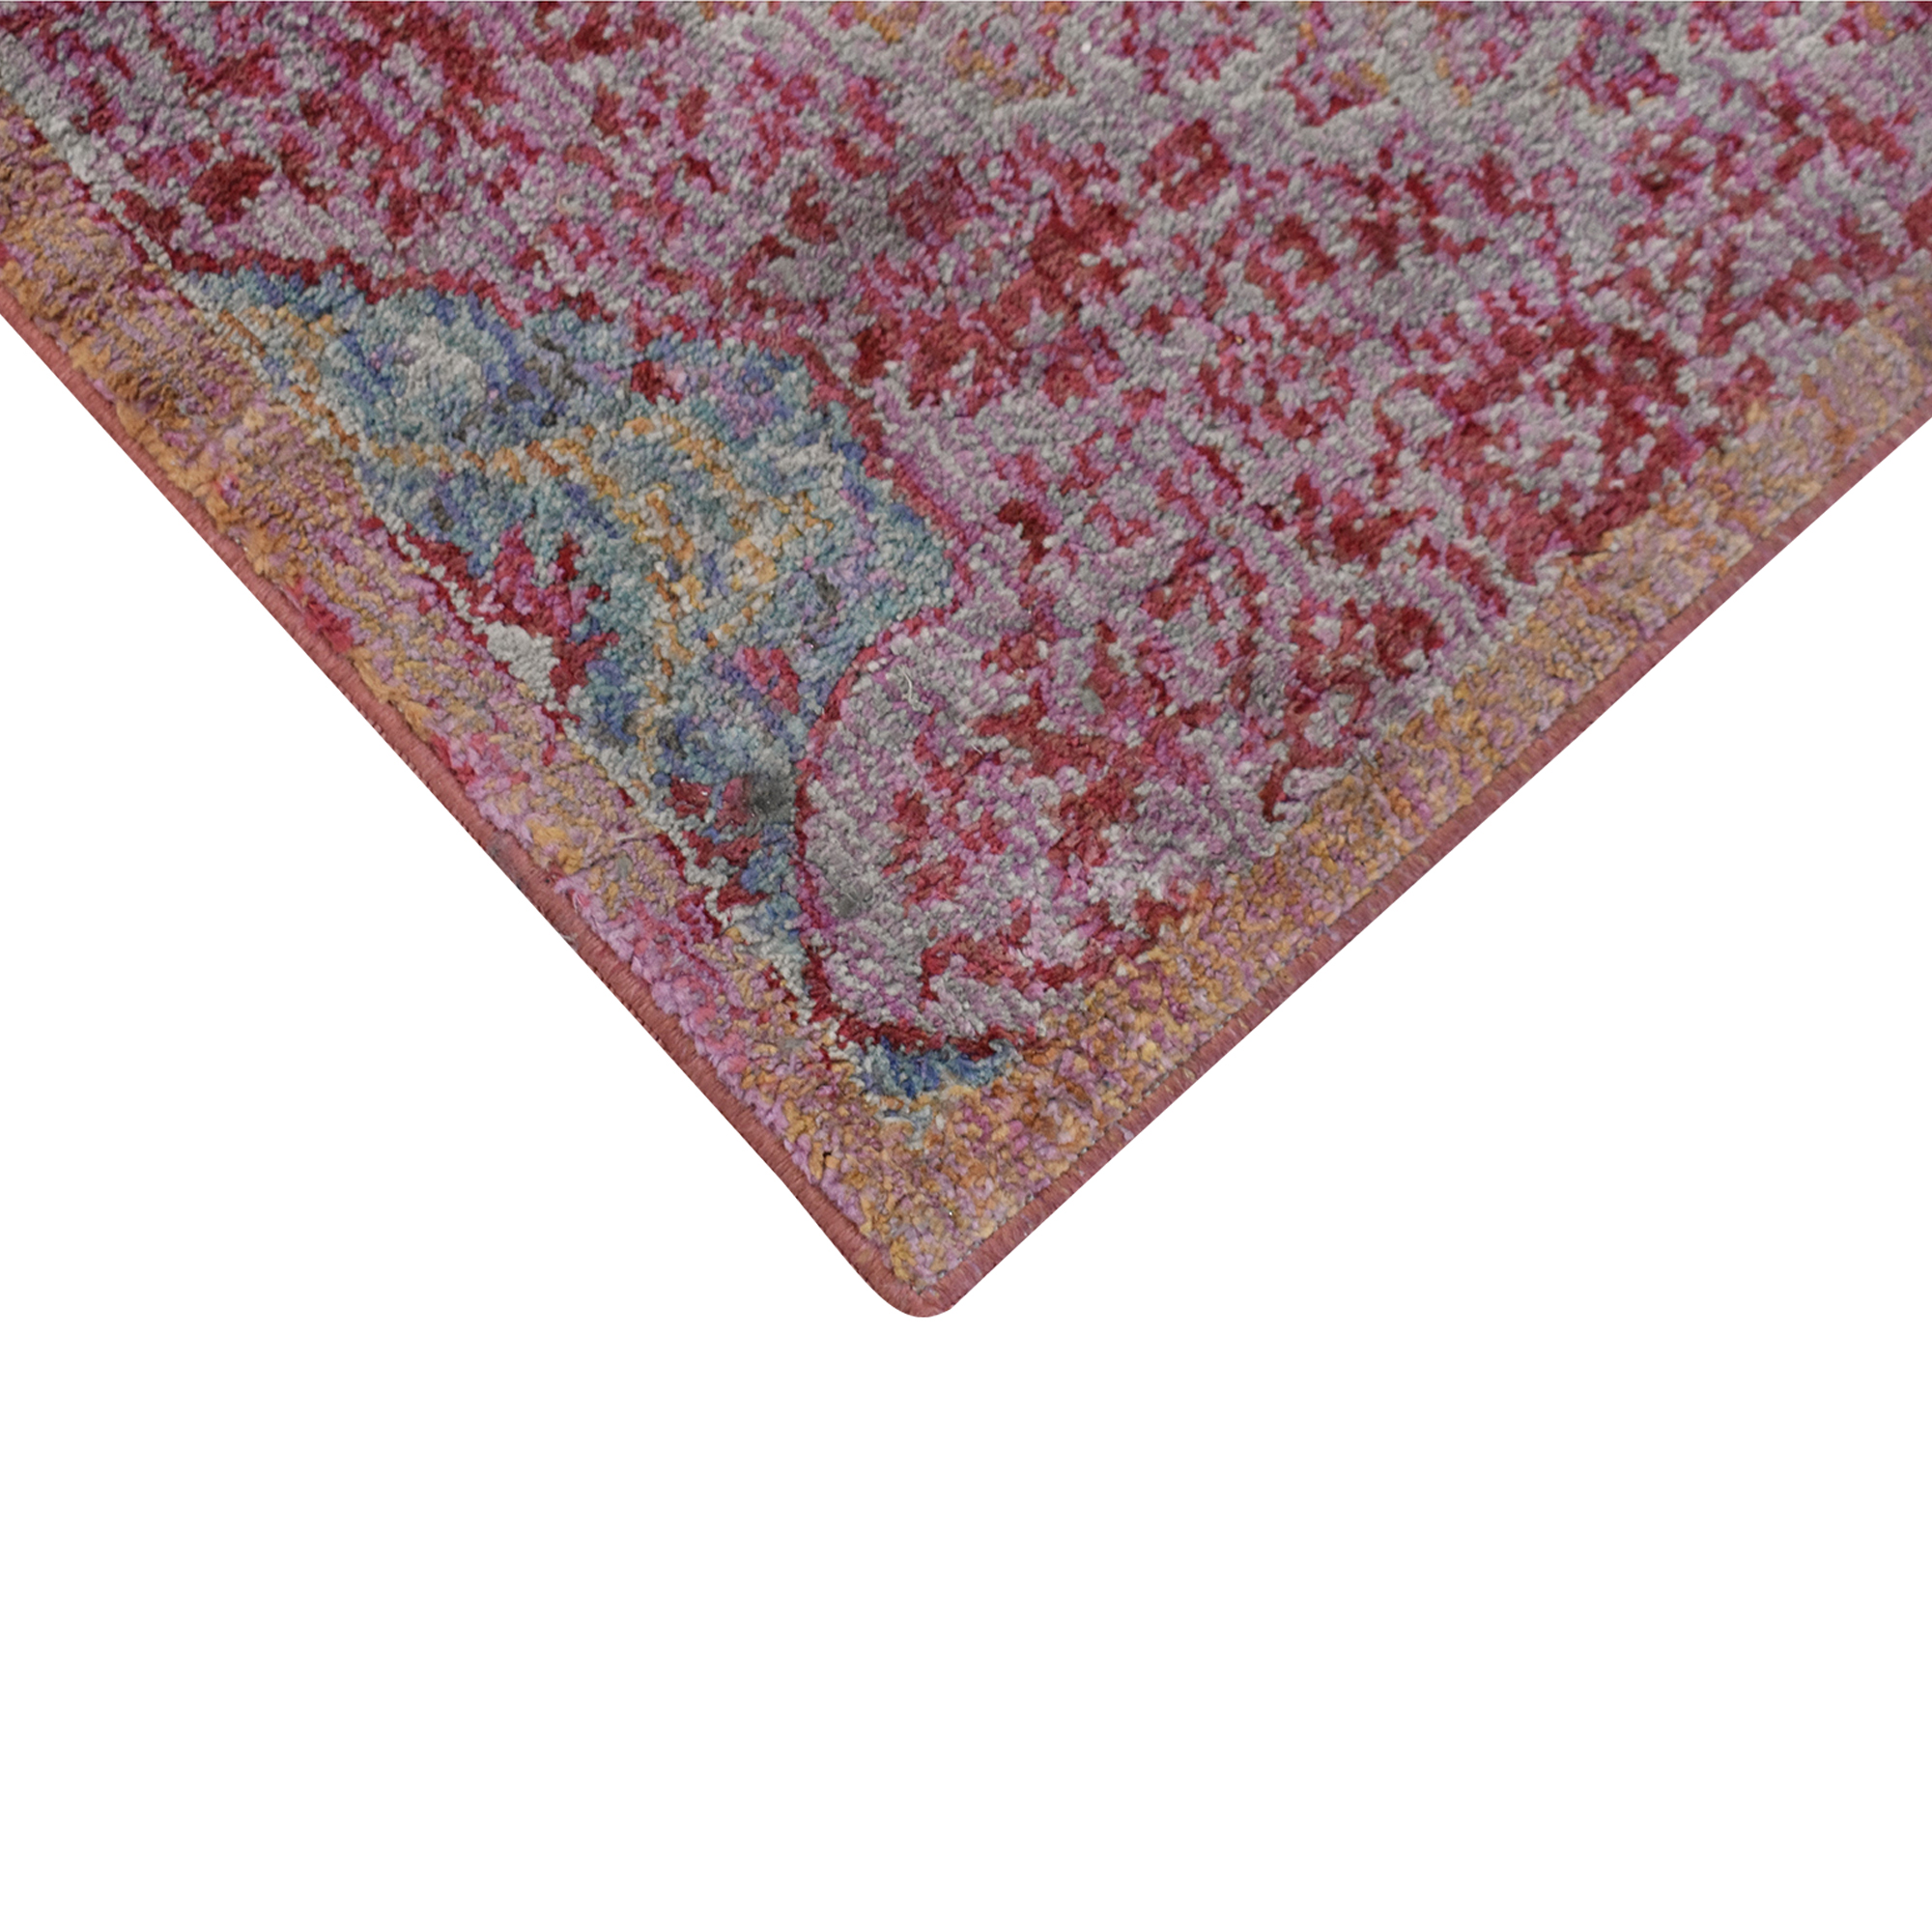 Safavieh Safavieh Sutton Collection Runner Rug coupon